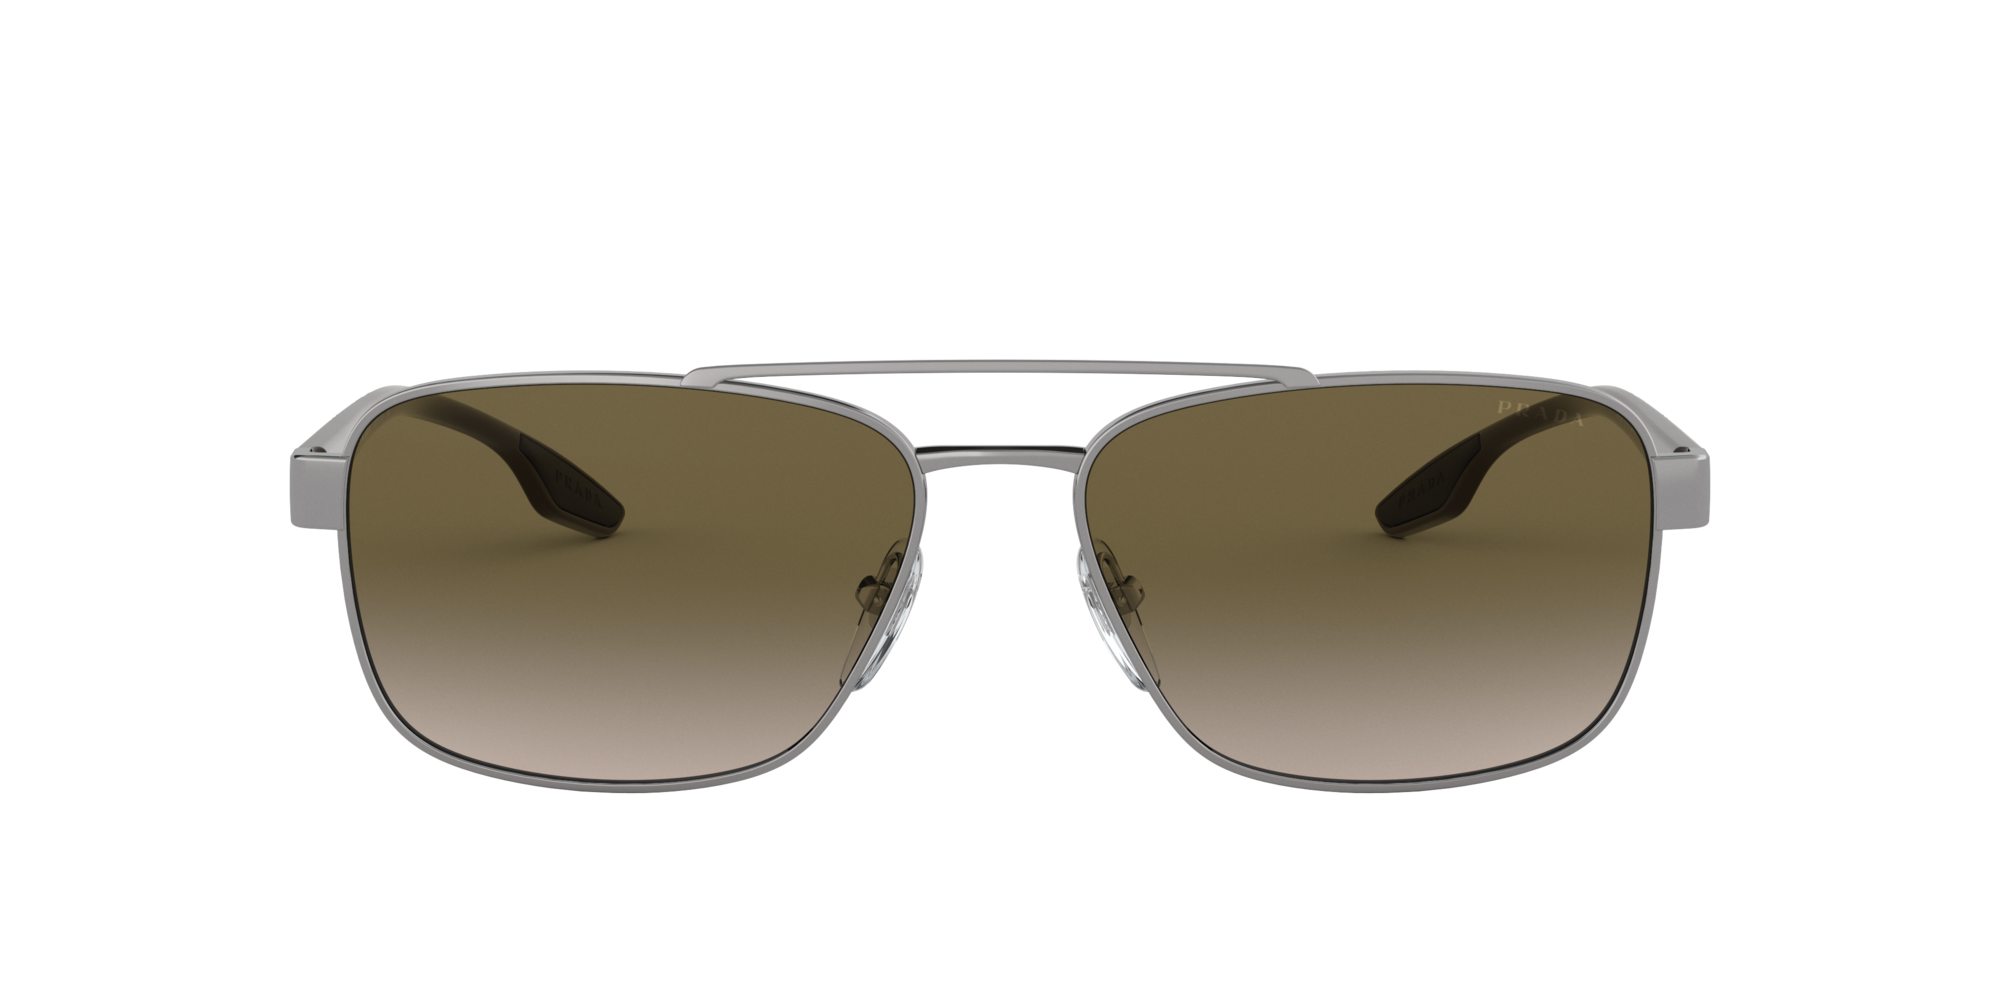 Image for PS 51US 59 LIFESTYLE from LensCrafters | Glasses, Prescription Glasses Online, Eyewear